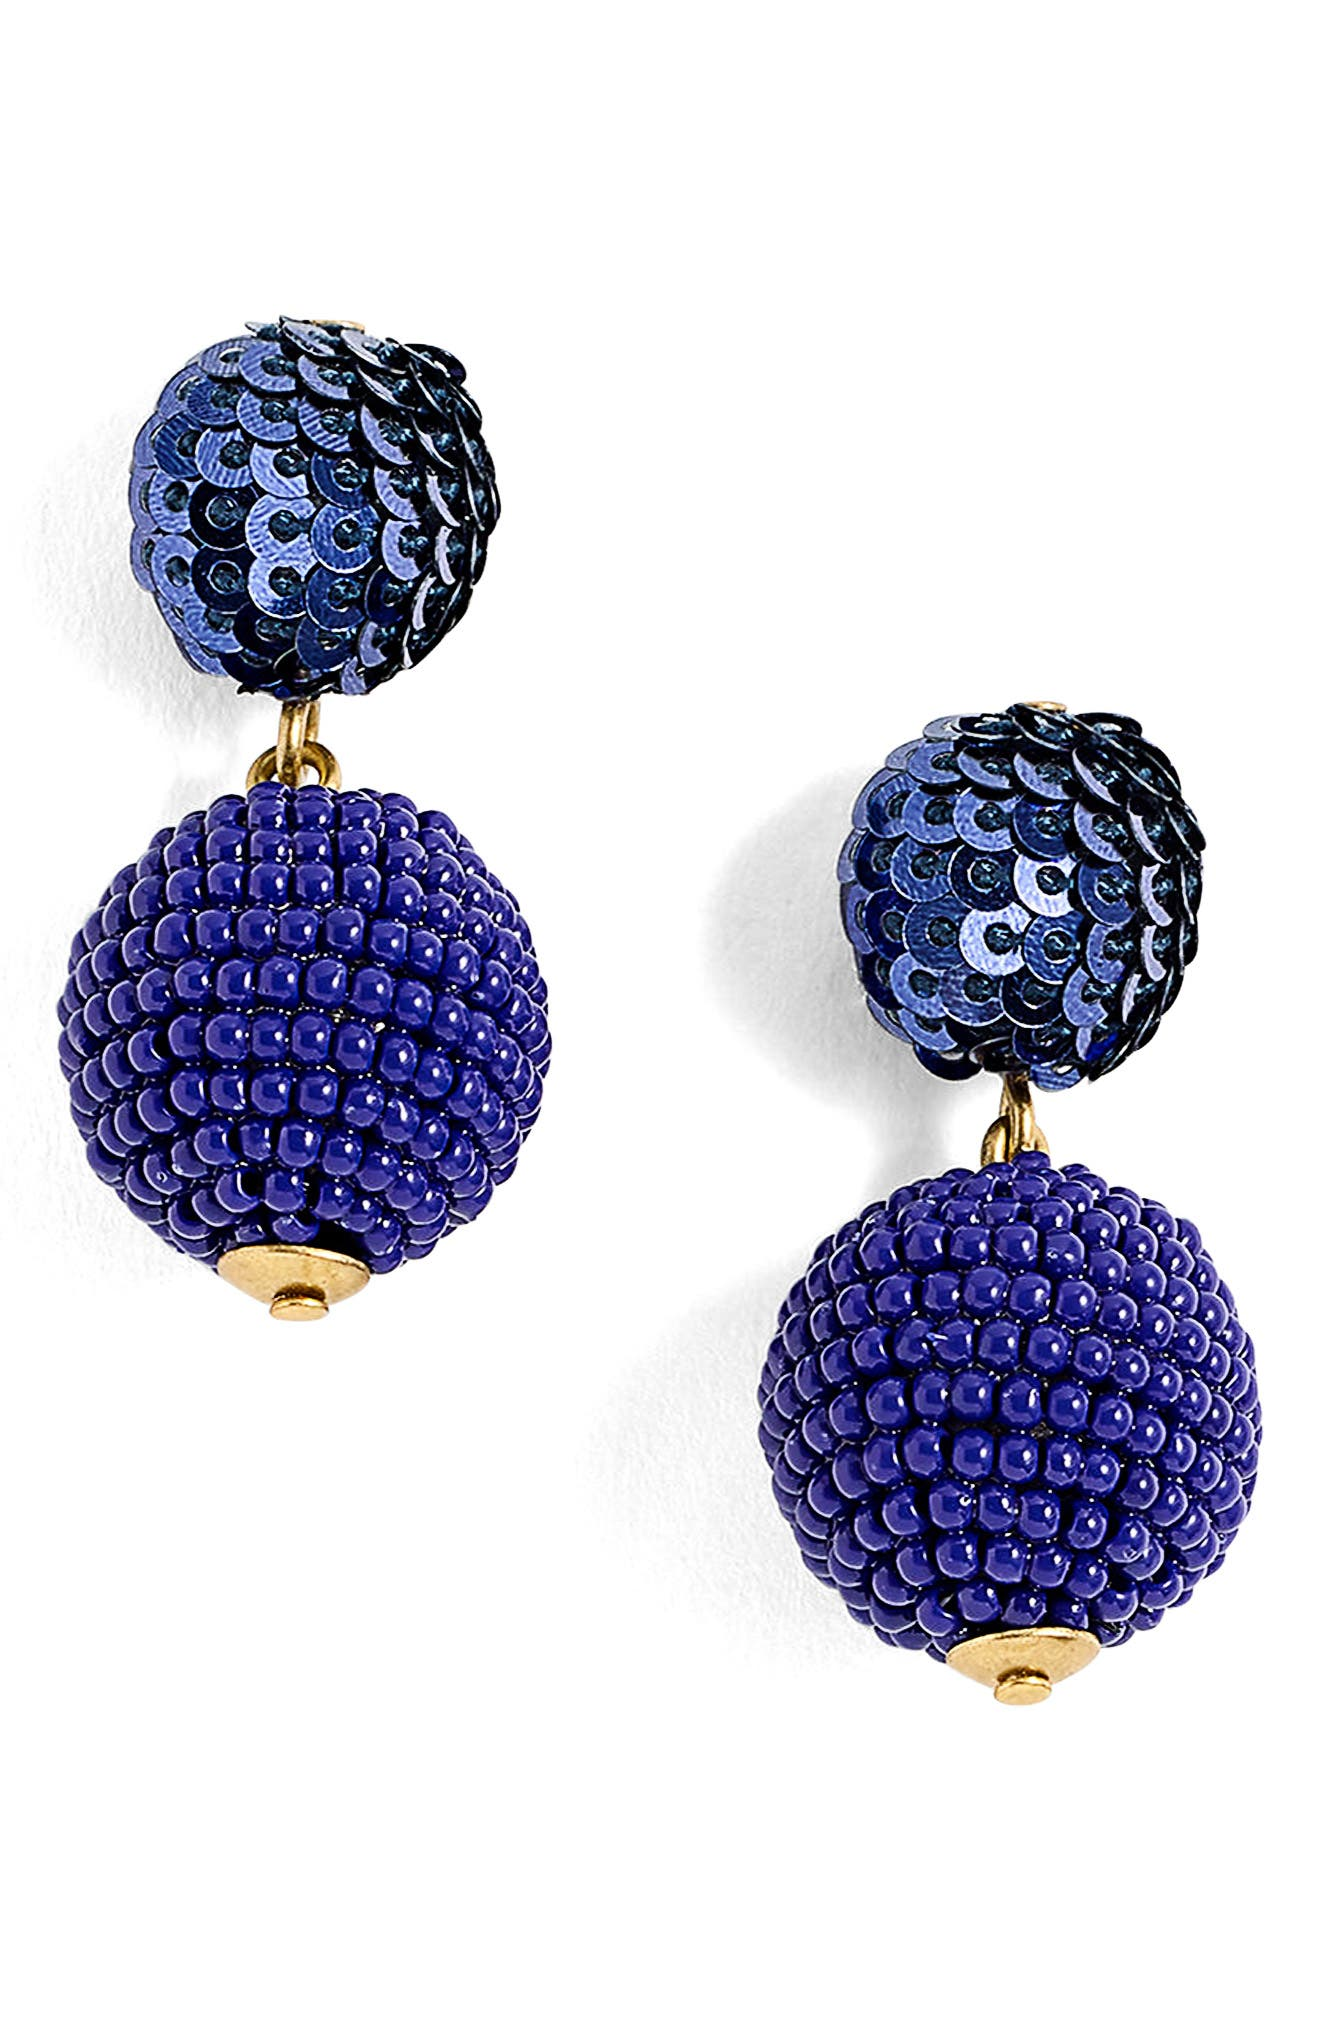 Sequin & Bead Ball-Drop Earrings,                             Main thumbnail 1, color,                             400